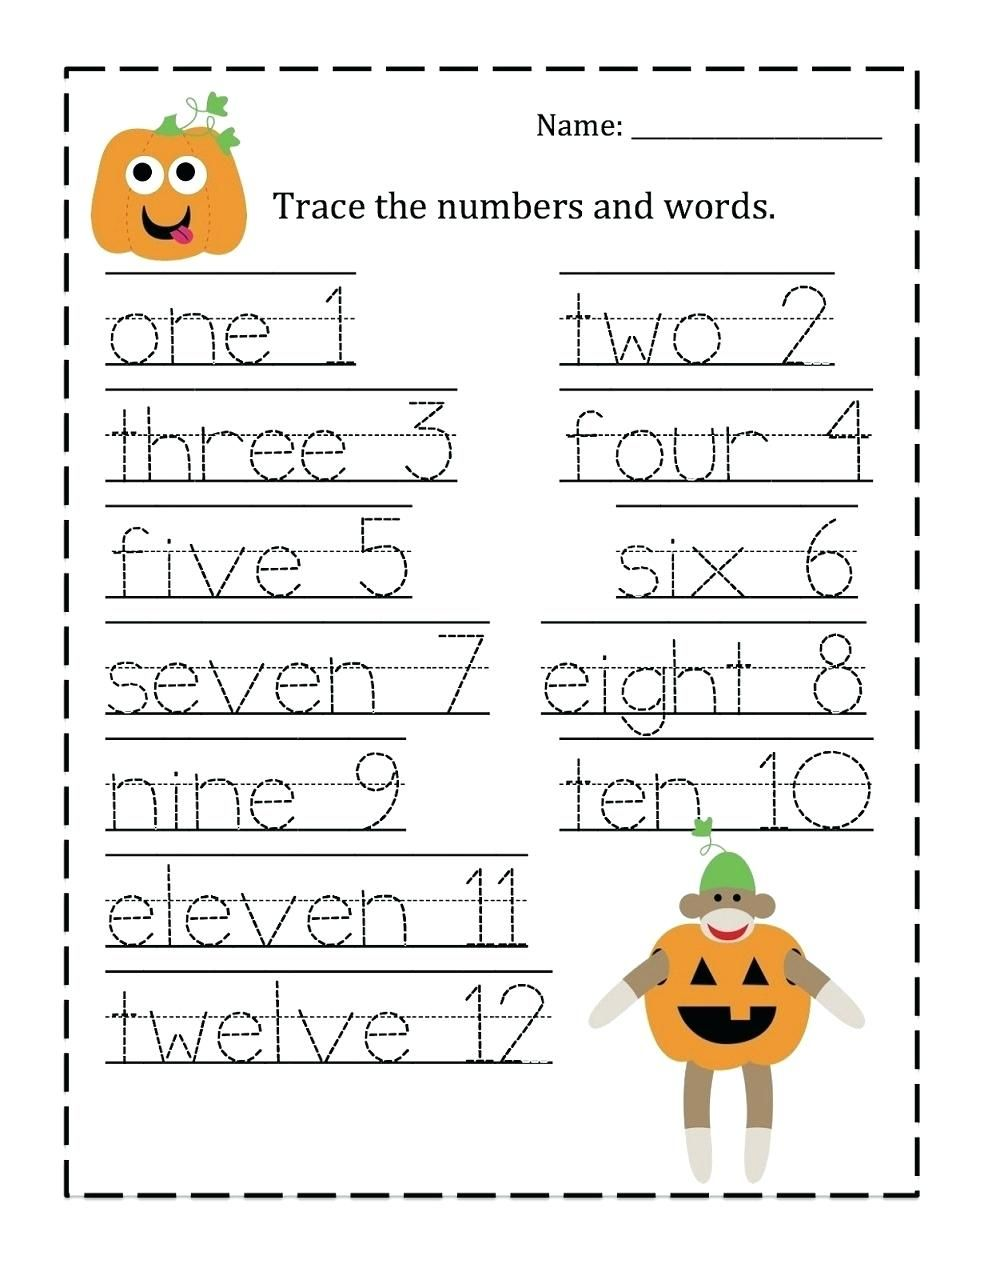 Free Name Handwriting Worksheets Pictures   Activities ...